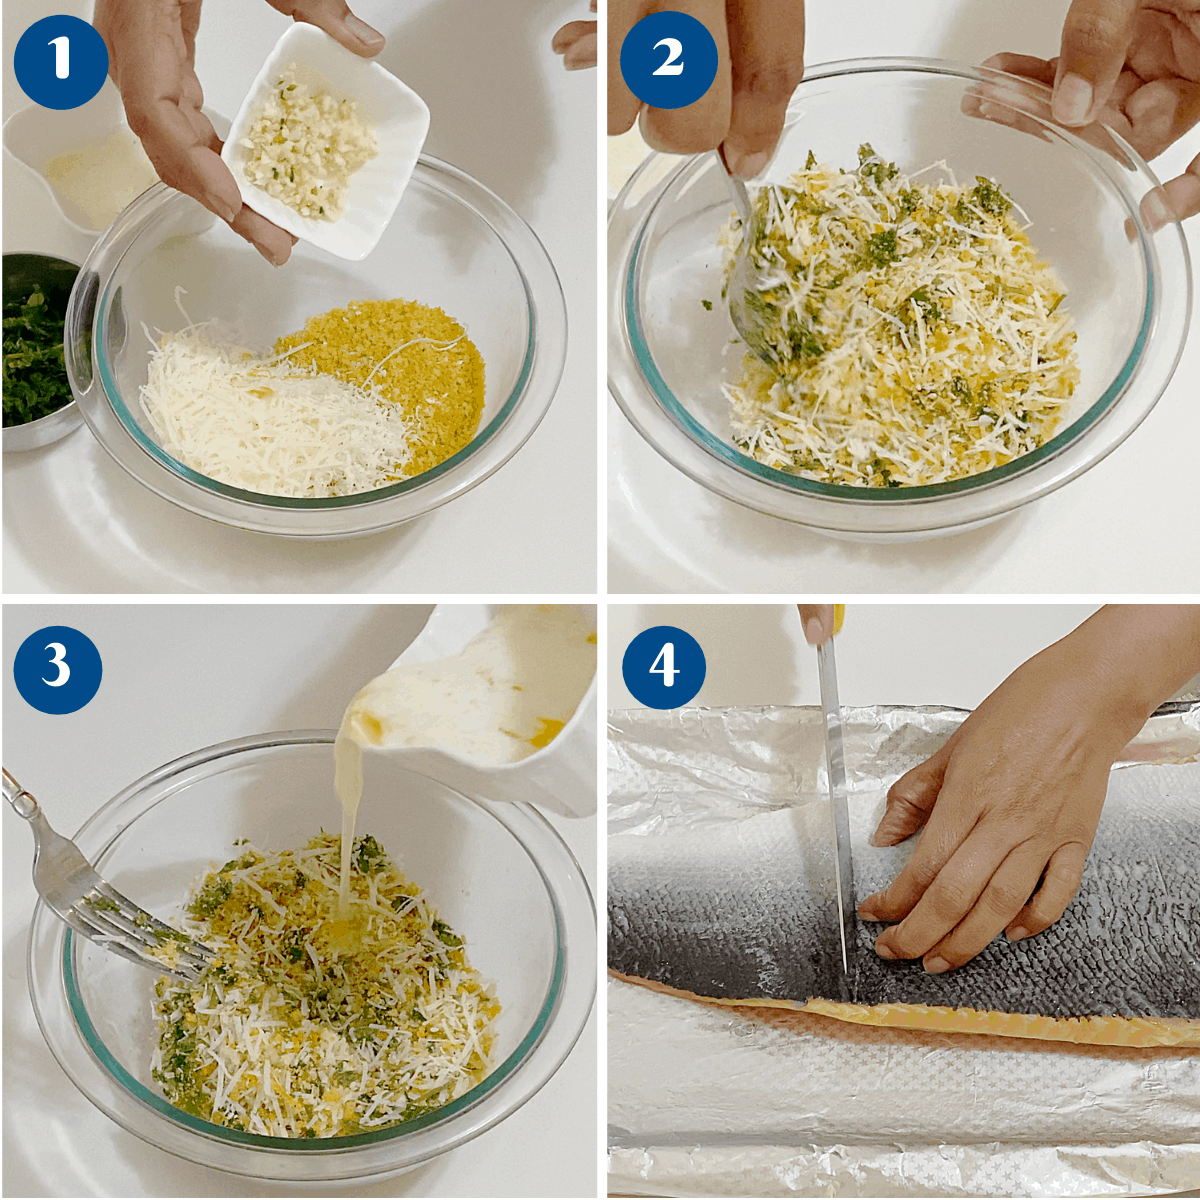 Progress pictures making the breadcrumbs with parmesan for salmon.